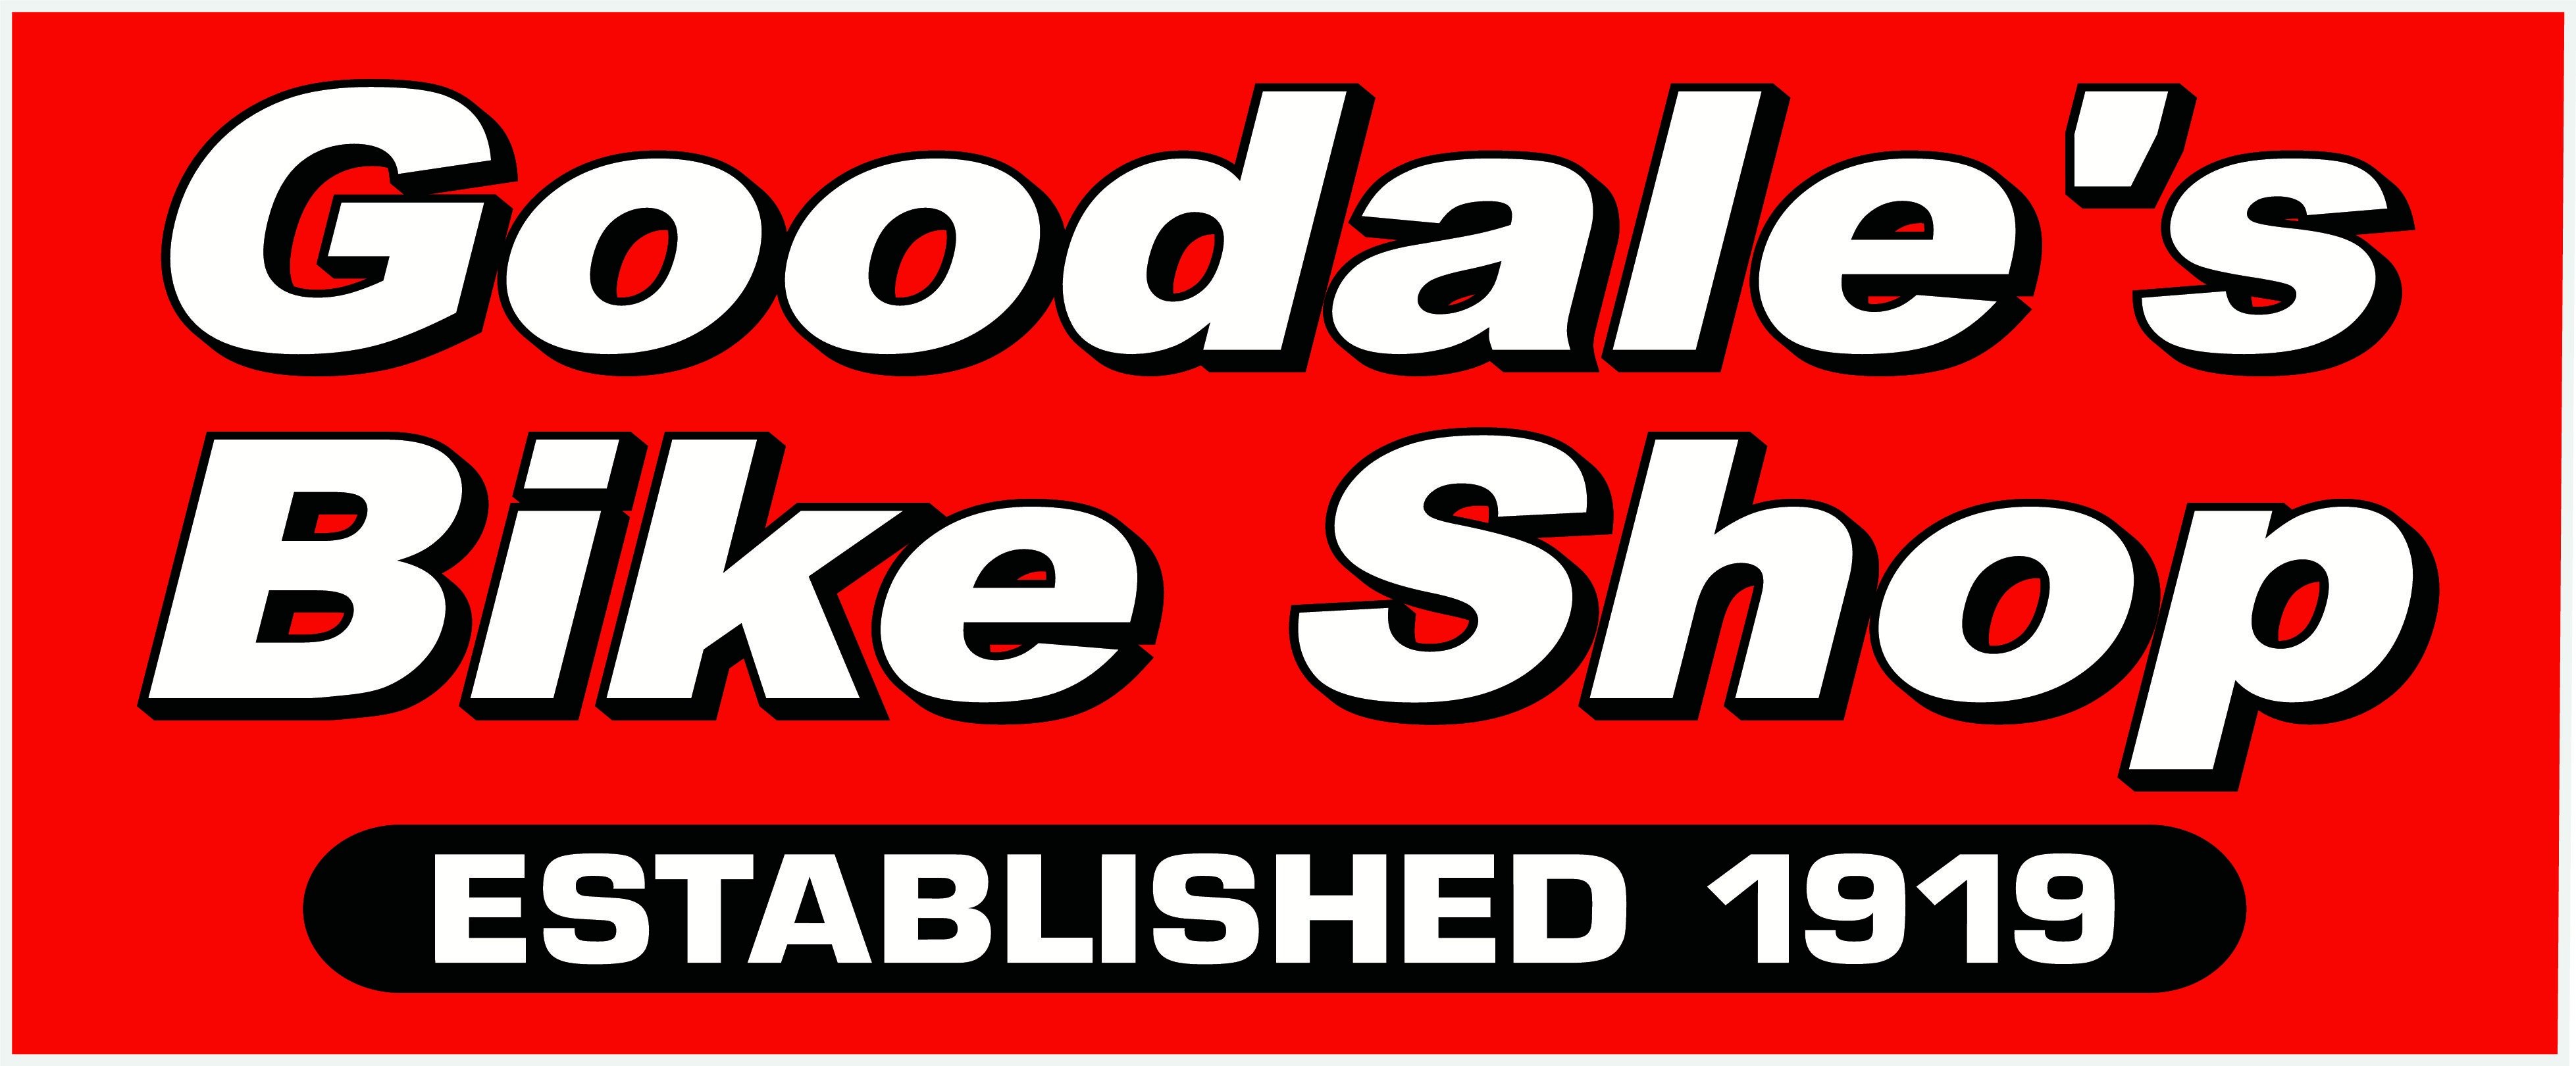 Goodale's Bike Shop homepage